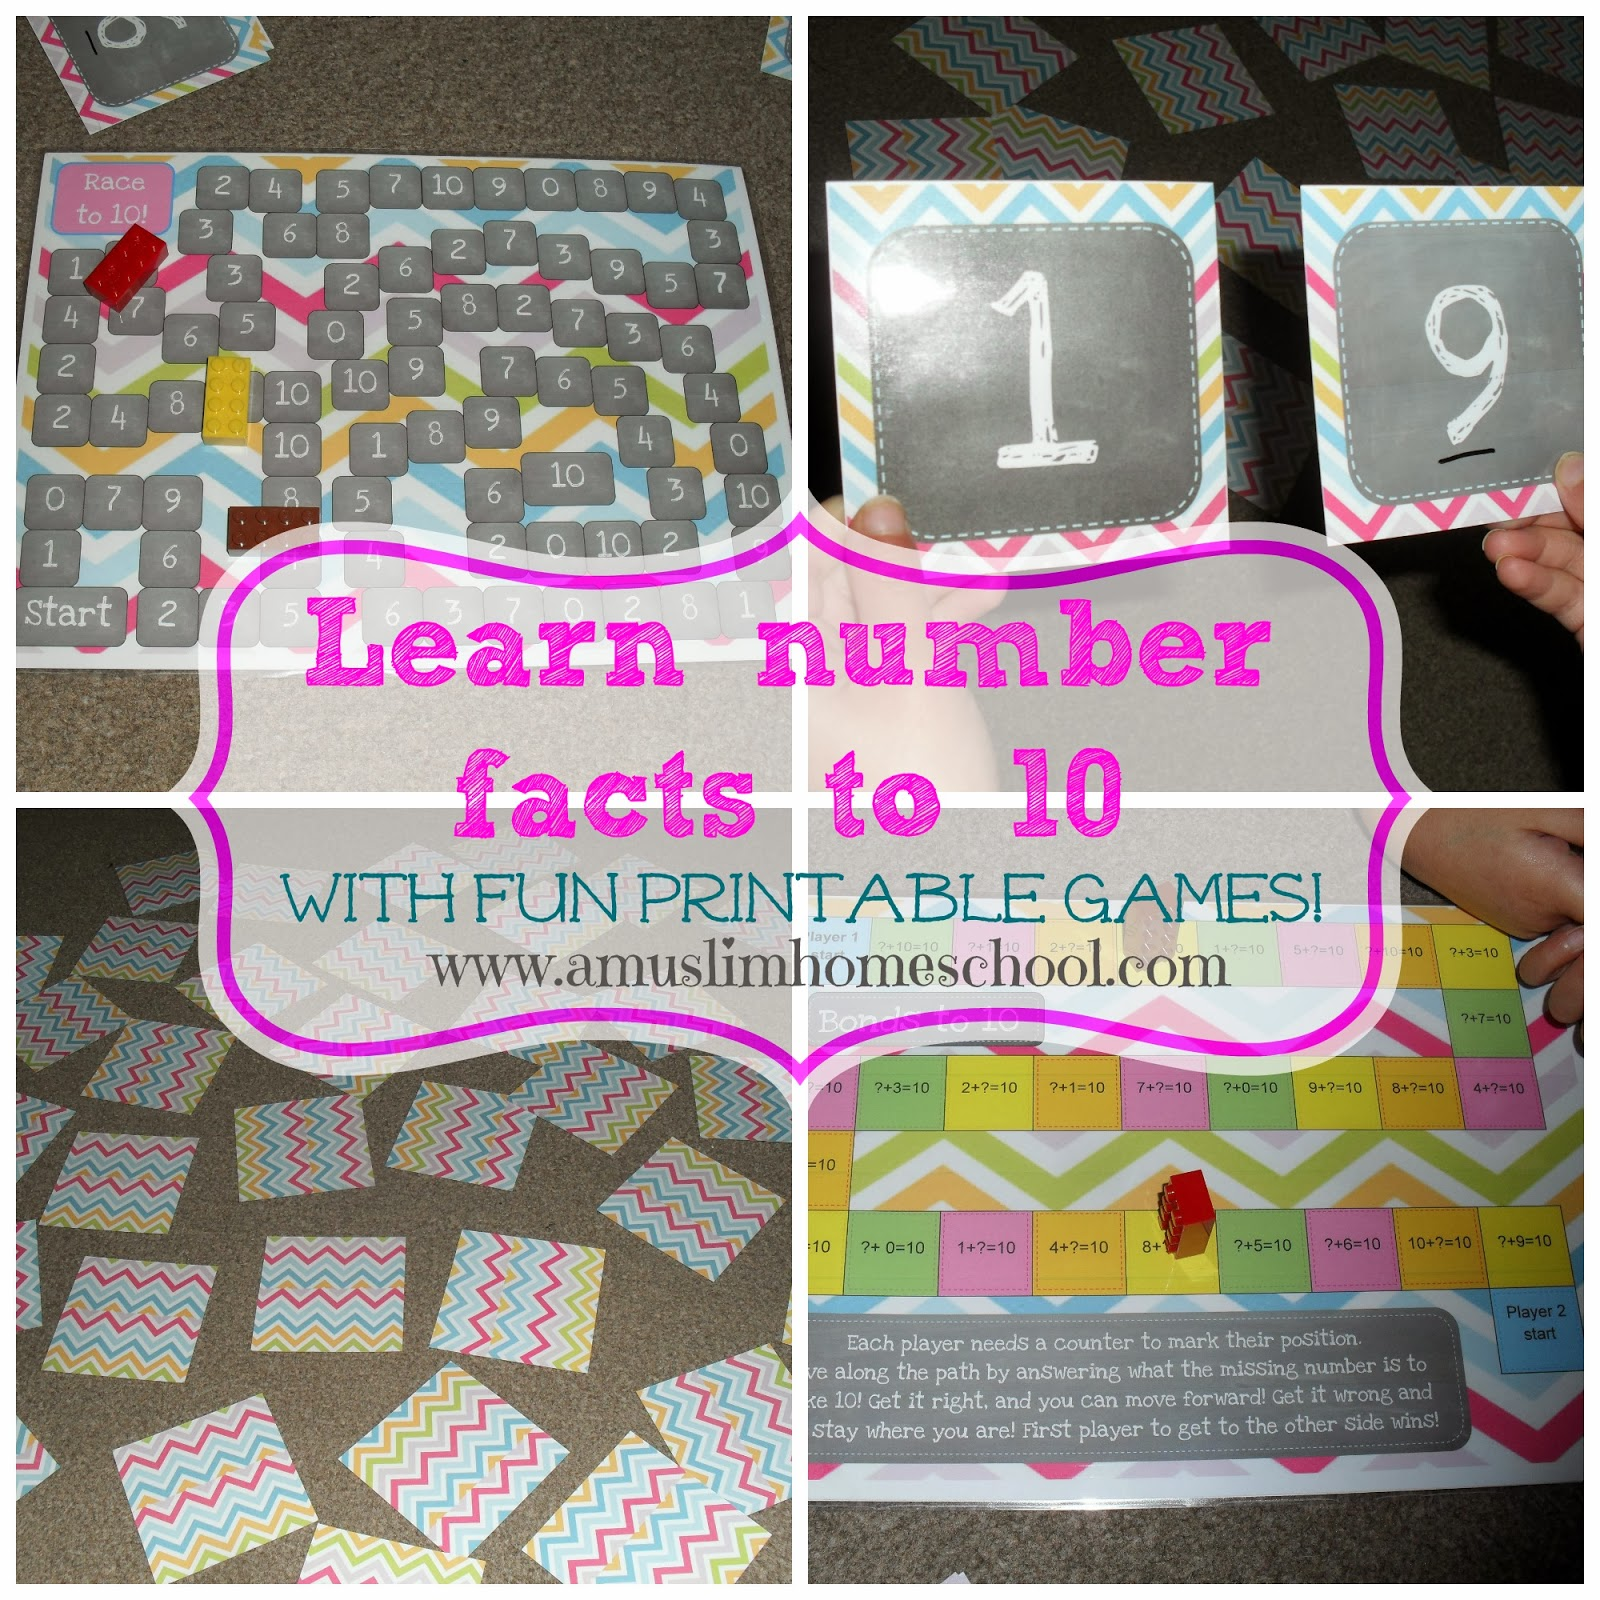 free printable math games to learn number facts / bonds to 10